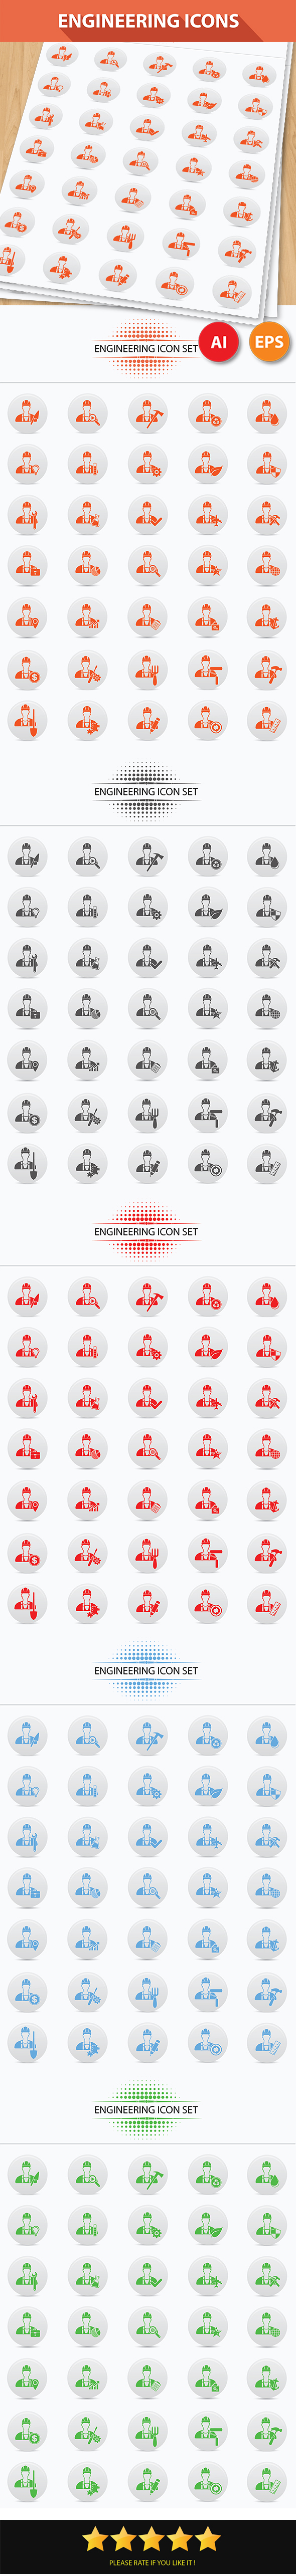 GraphicRiver Engineering Icons 7035508